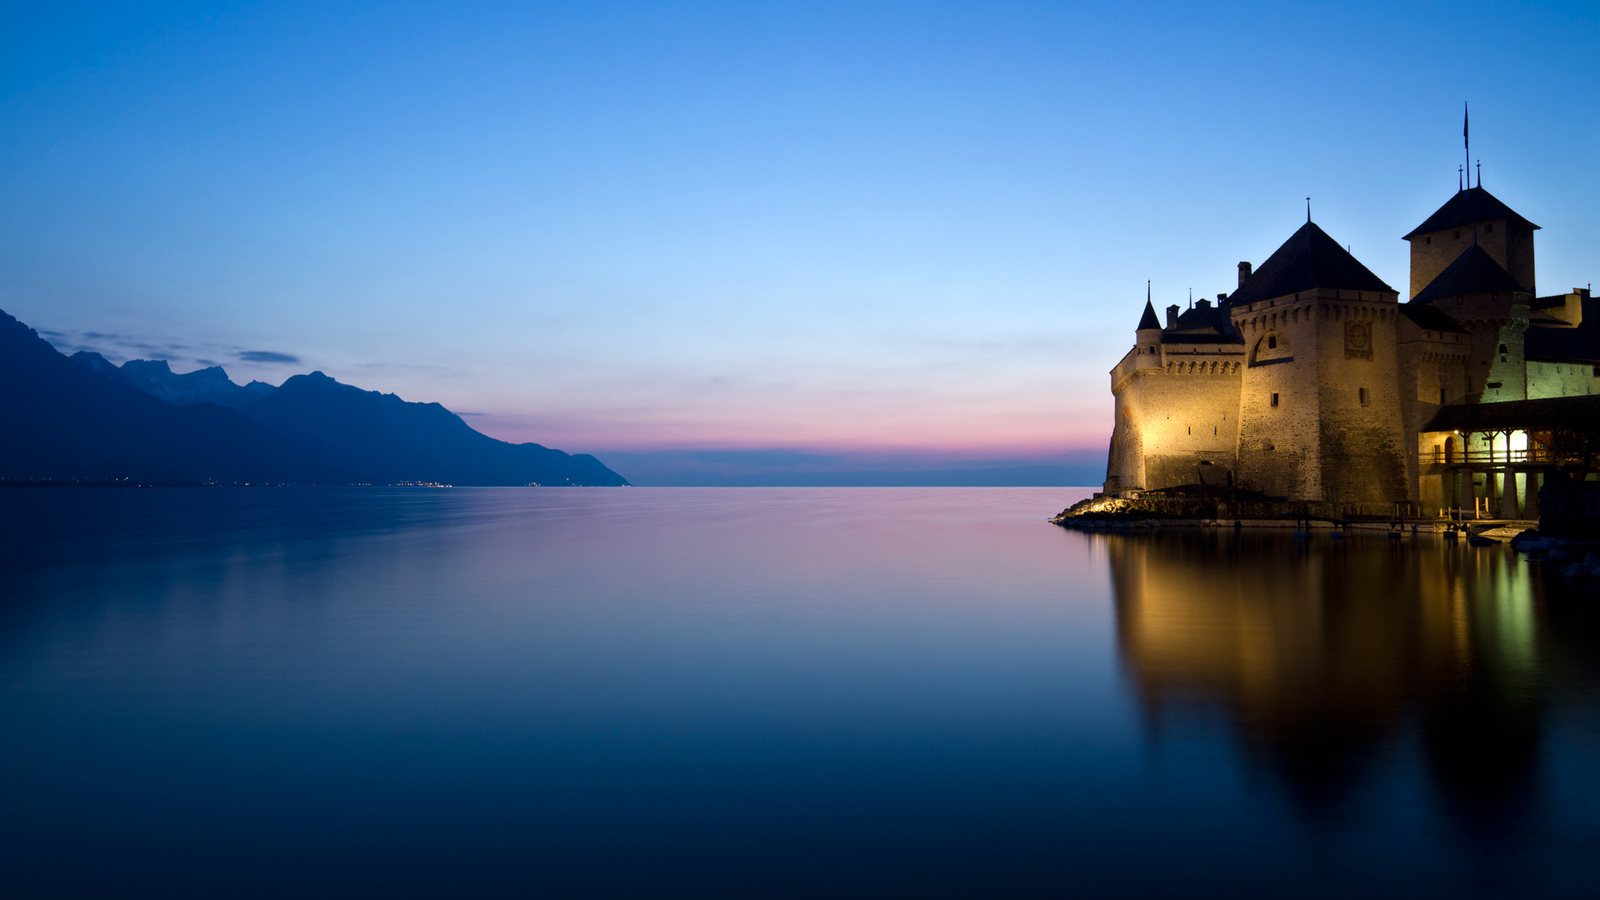 вода, закат, 2560x1600, castle, горы, water, lake, пейзаж, озеро, mountains, lights, небо, замок, landscape, sunset, свет, природа, nature, reflection, sky, отражение